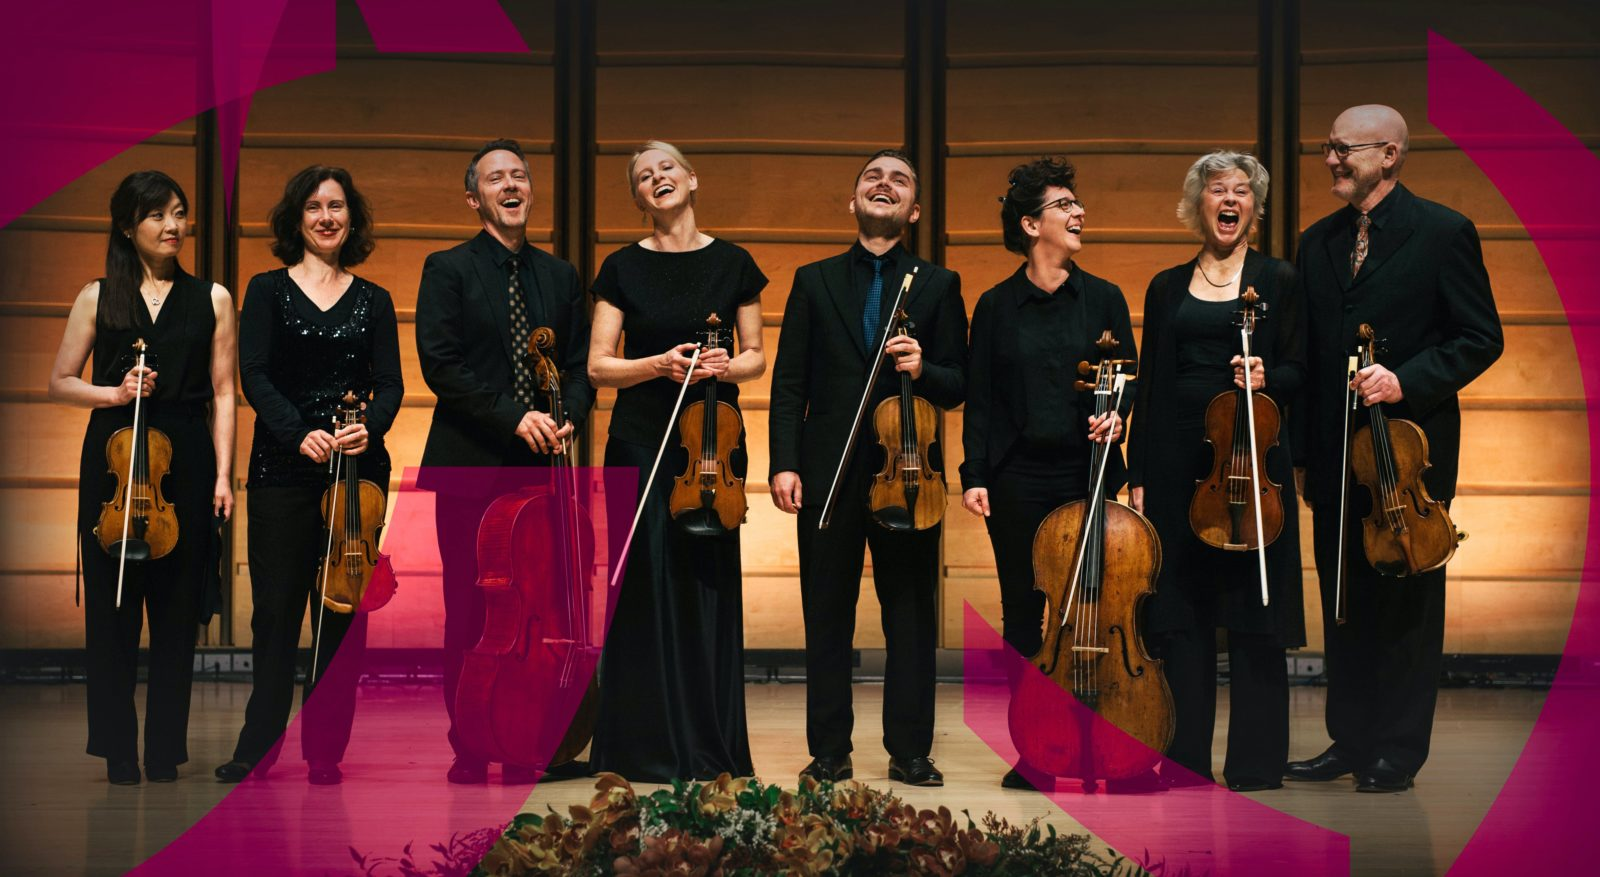 Musicians from the the Australian Romantic & Classical Orchestra, standing on stage and laughing.